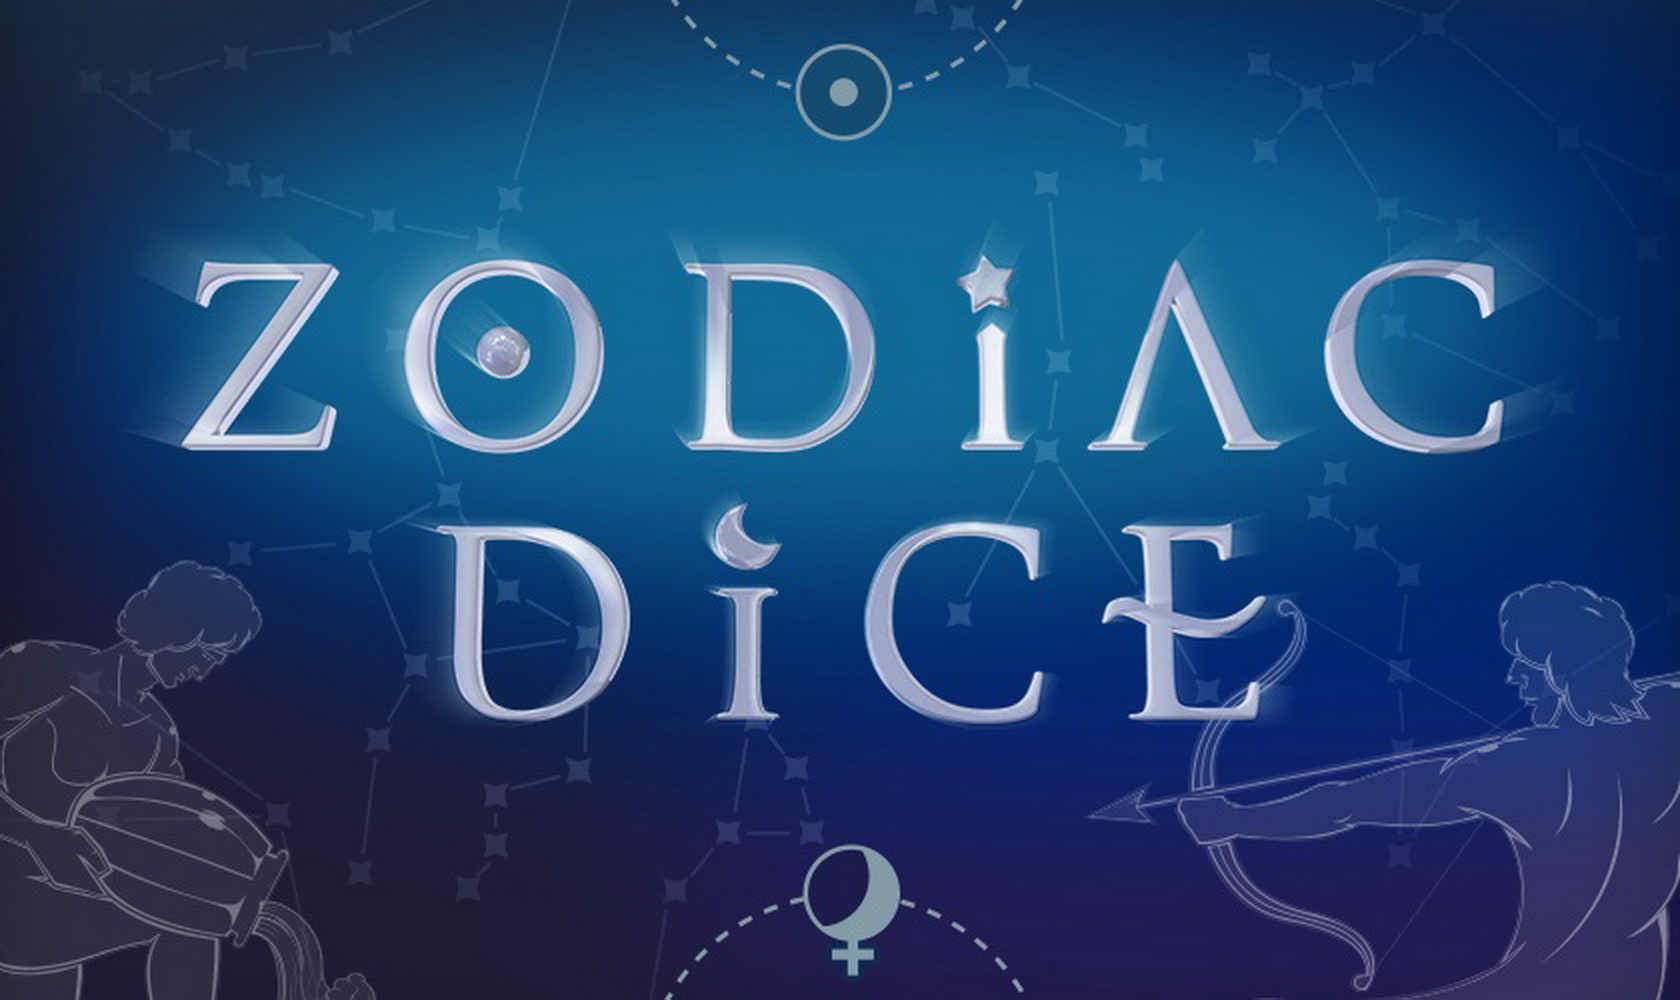 The Zodiac Dice Online Slot Demo Game by Air Dice